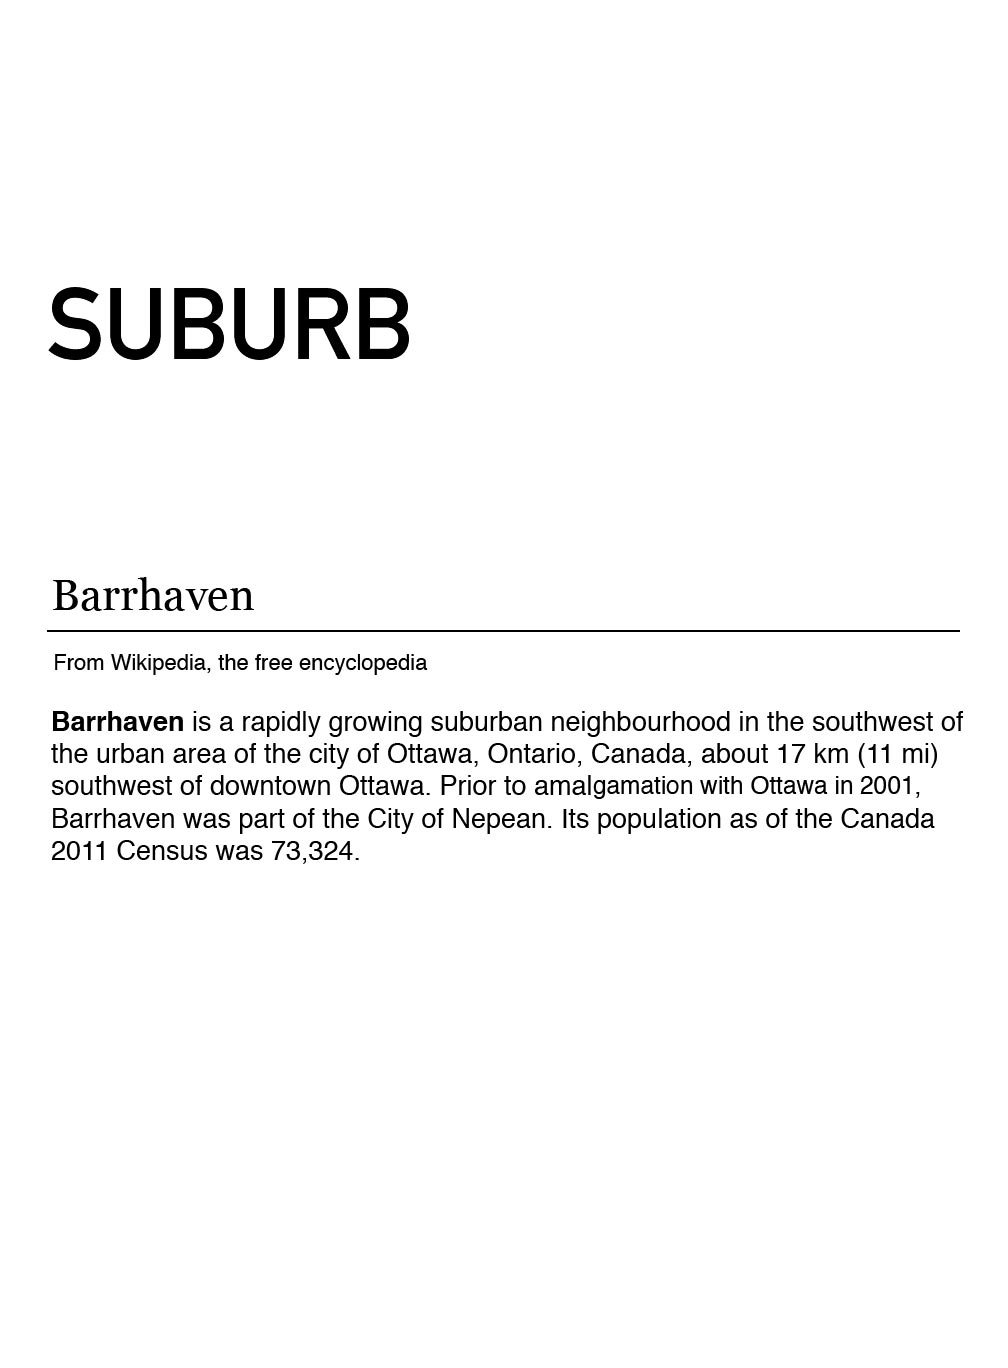 Barrhaven-intro-5-web